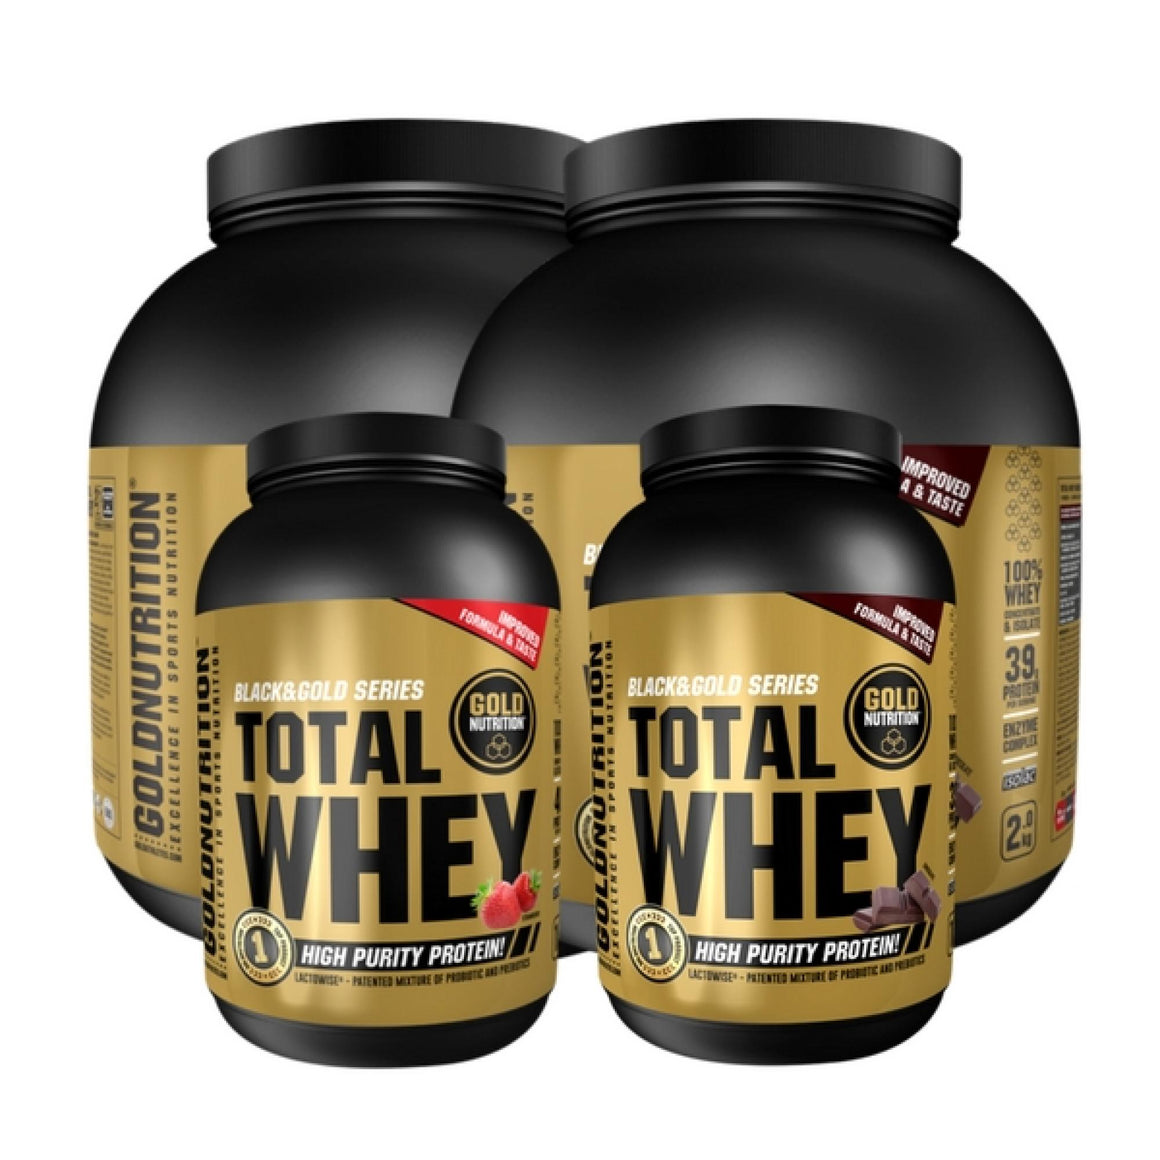 Proteína Total Whey Black&Gold Series